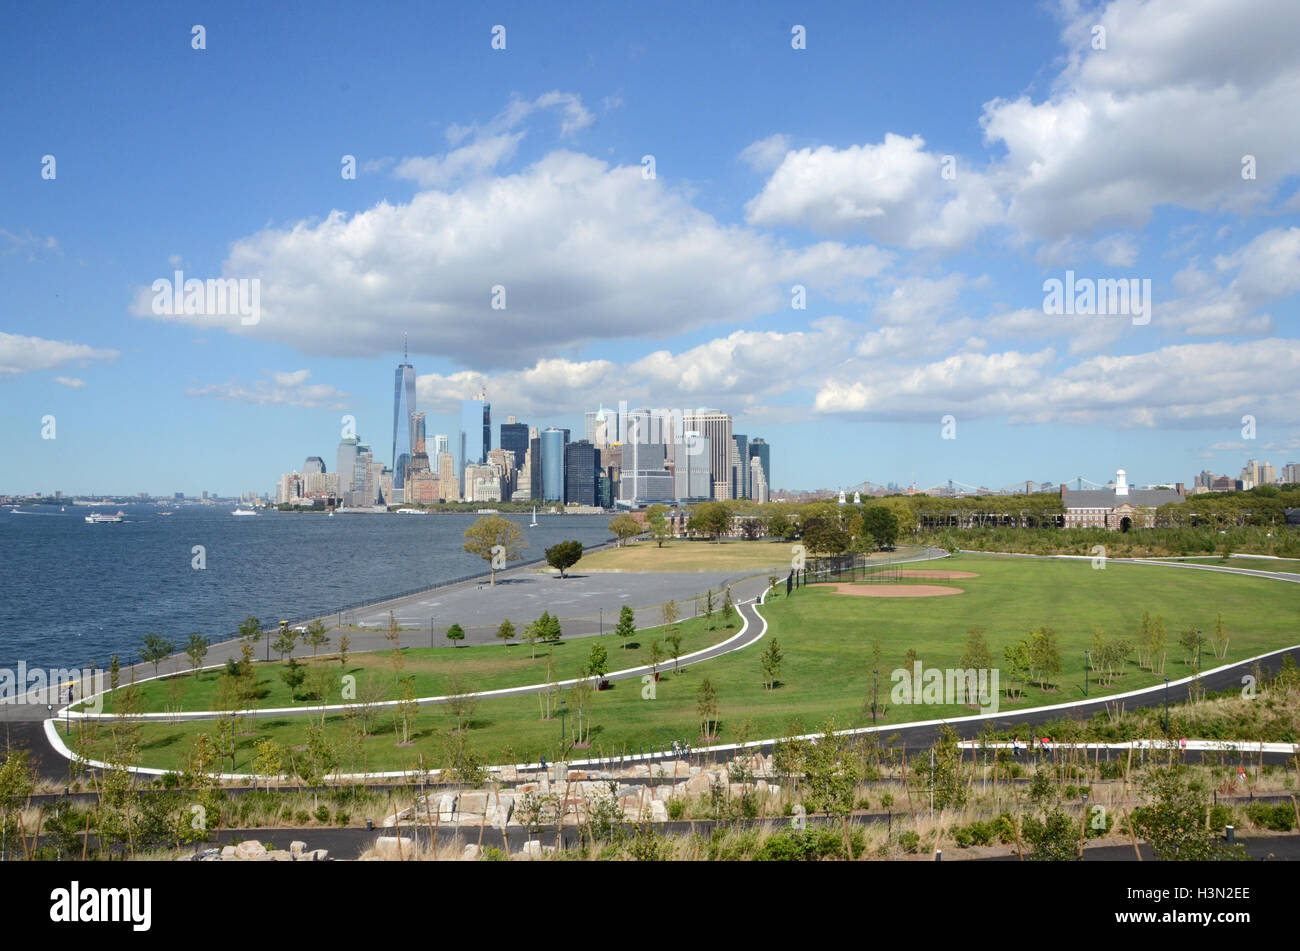 View of Manhattan seen across landscaped fields on Governor's Island, New York - Stock Image